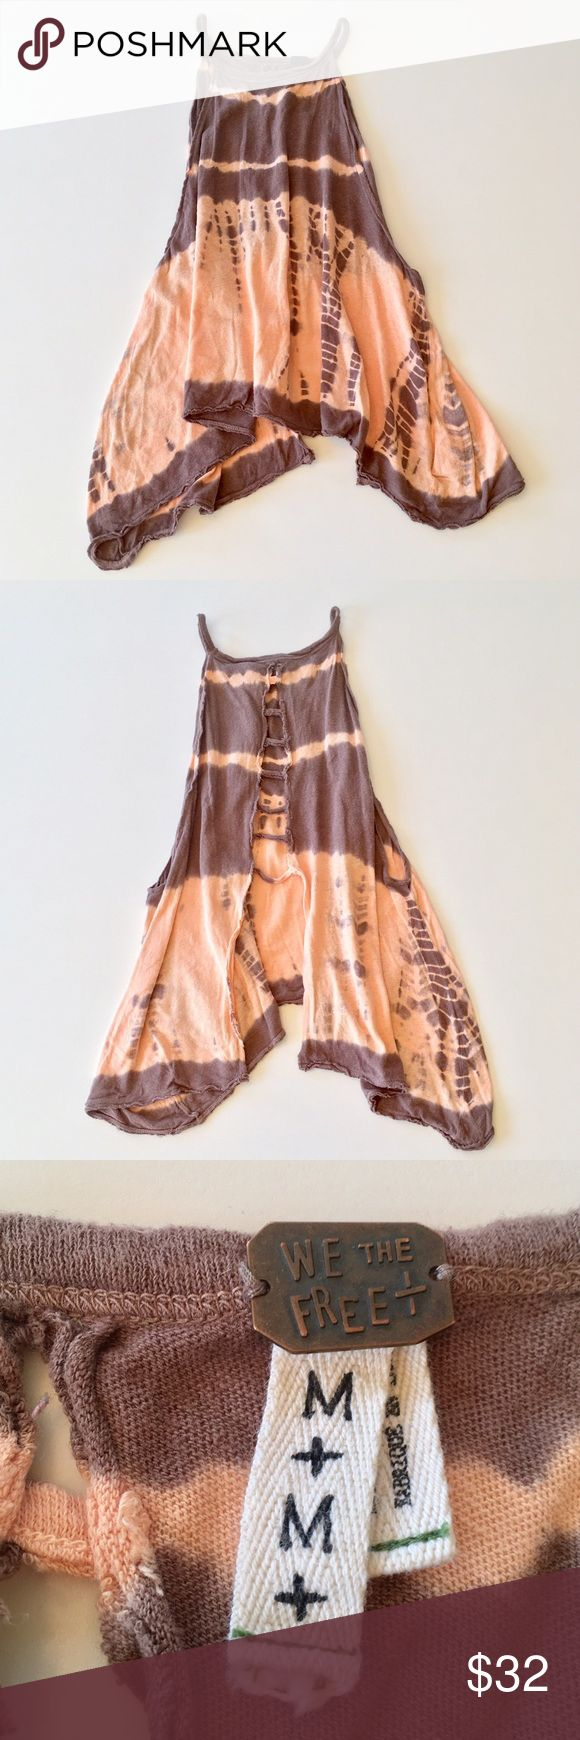 """We The Free Bonfire Tank Style: Tie dye design, high neck, split open back, oversized armholes, raw hem, cropped asymmetrical length. Measurements: ≈20-25"""" length; ≈7"""" strap to strap. Color: Taupe/Peach. Fabric: 52% Linen, 48% Cotton. Condition: Pre-owned with slight wear and a few loose threads; otherwise great condition. Care: Hand wash cold. Free People Tops Tank Tops"""